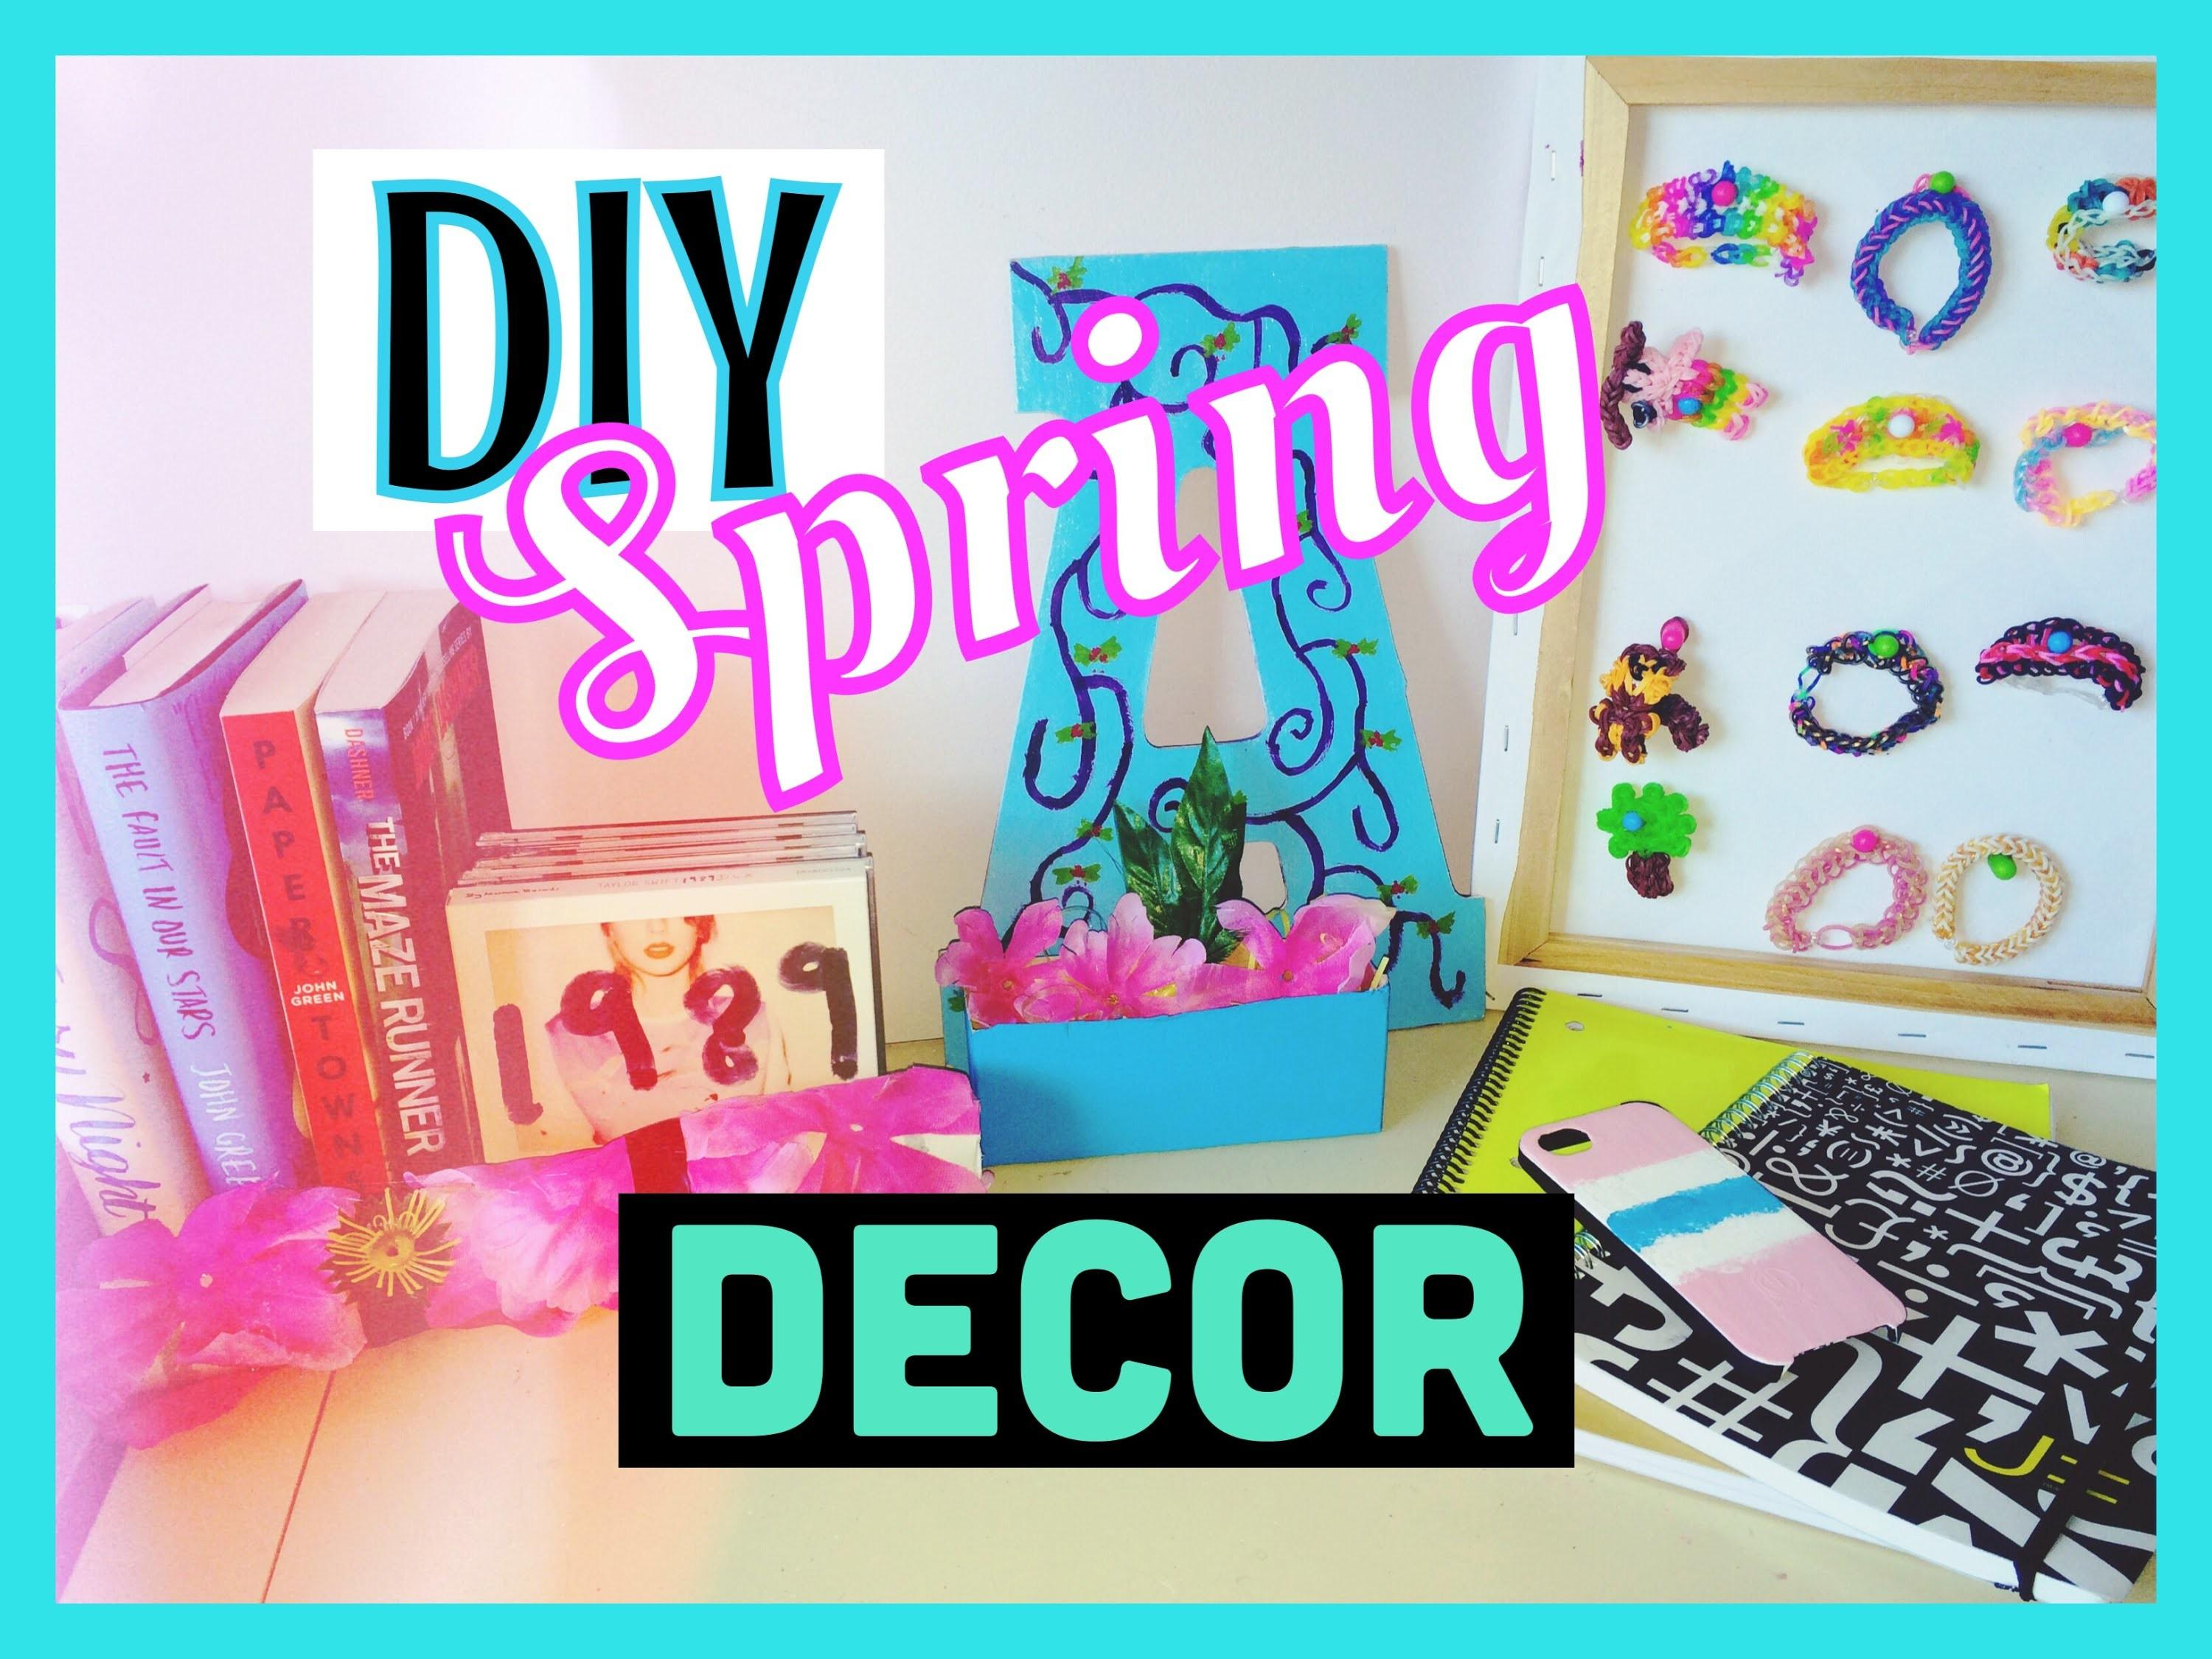 Diy Spring Room Decor 2015 Ideas